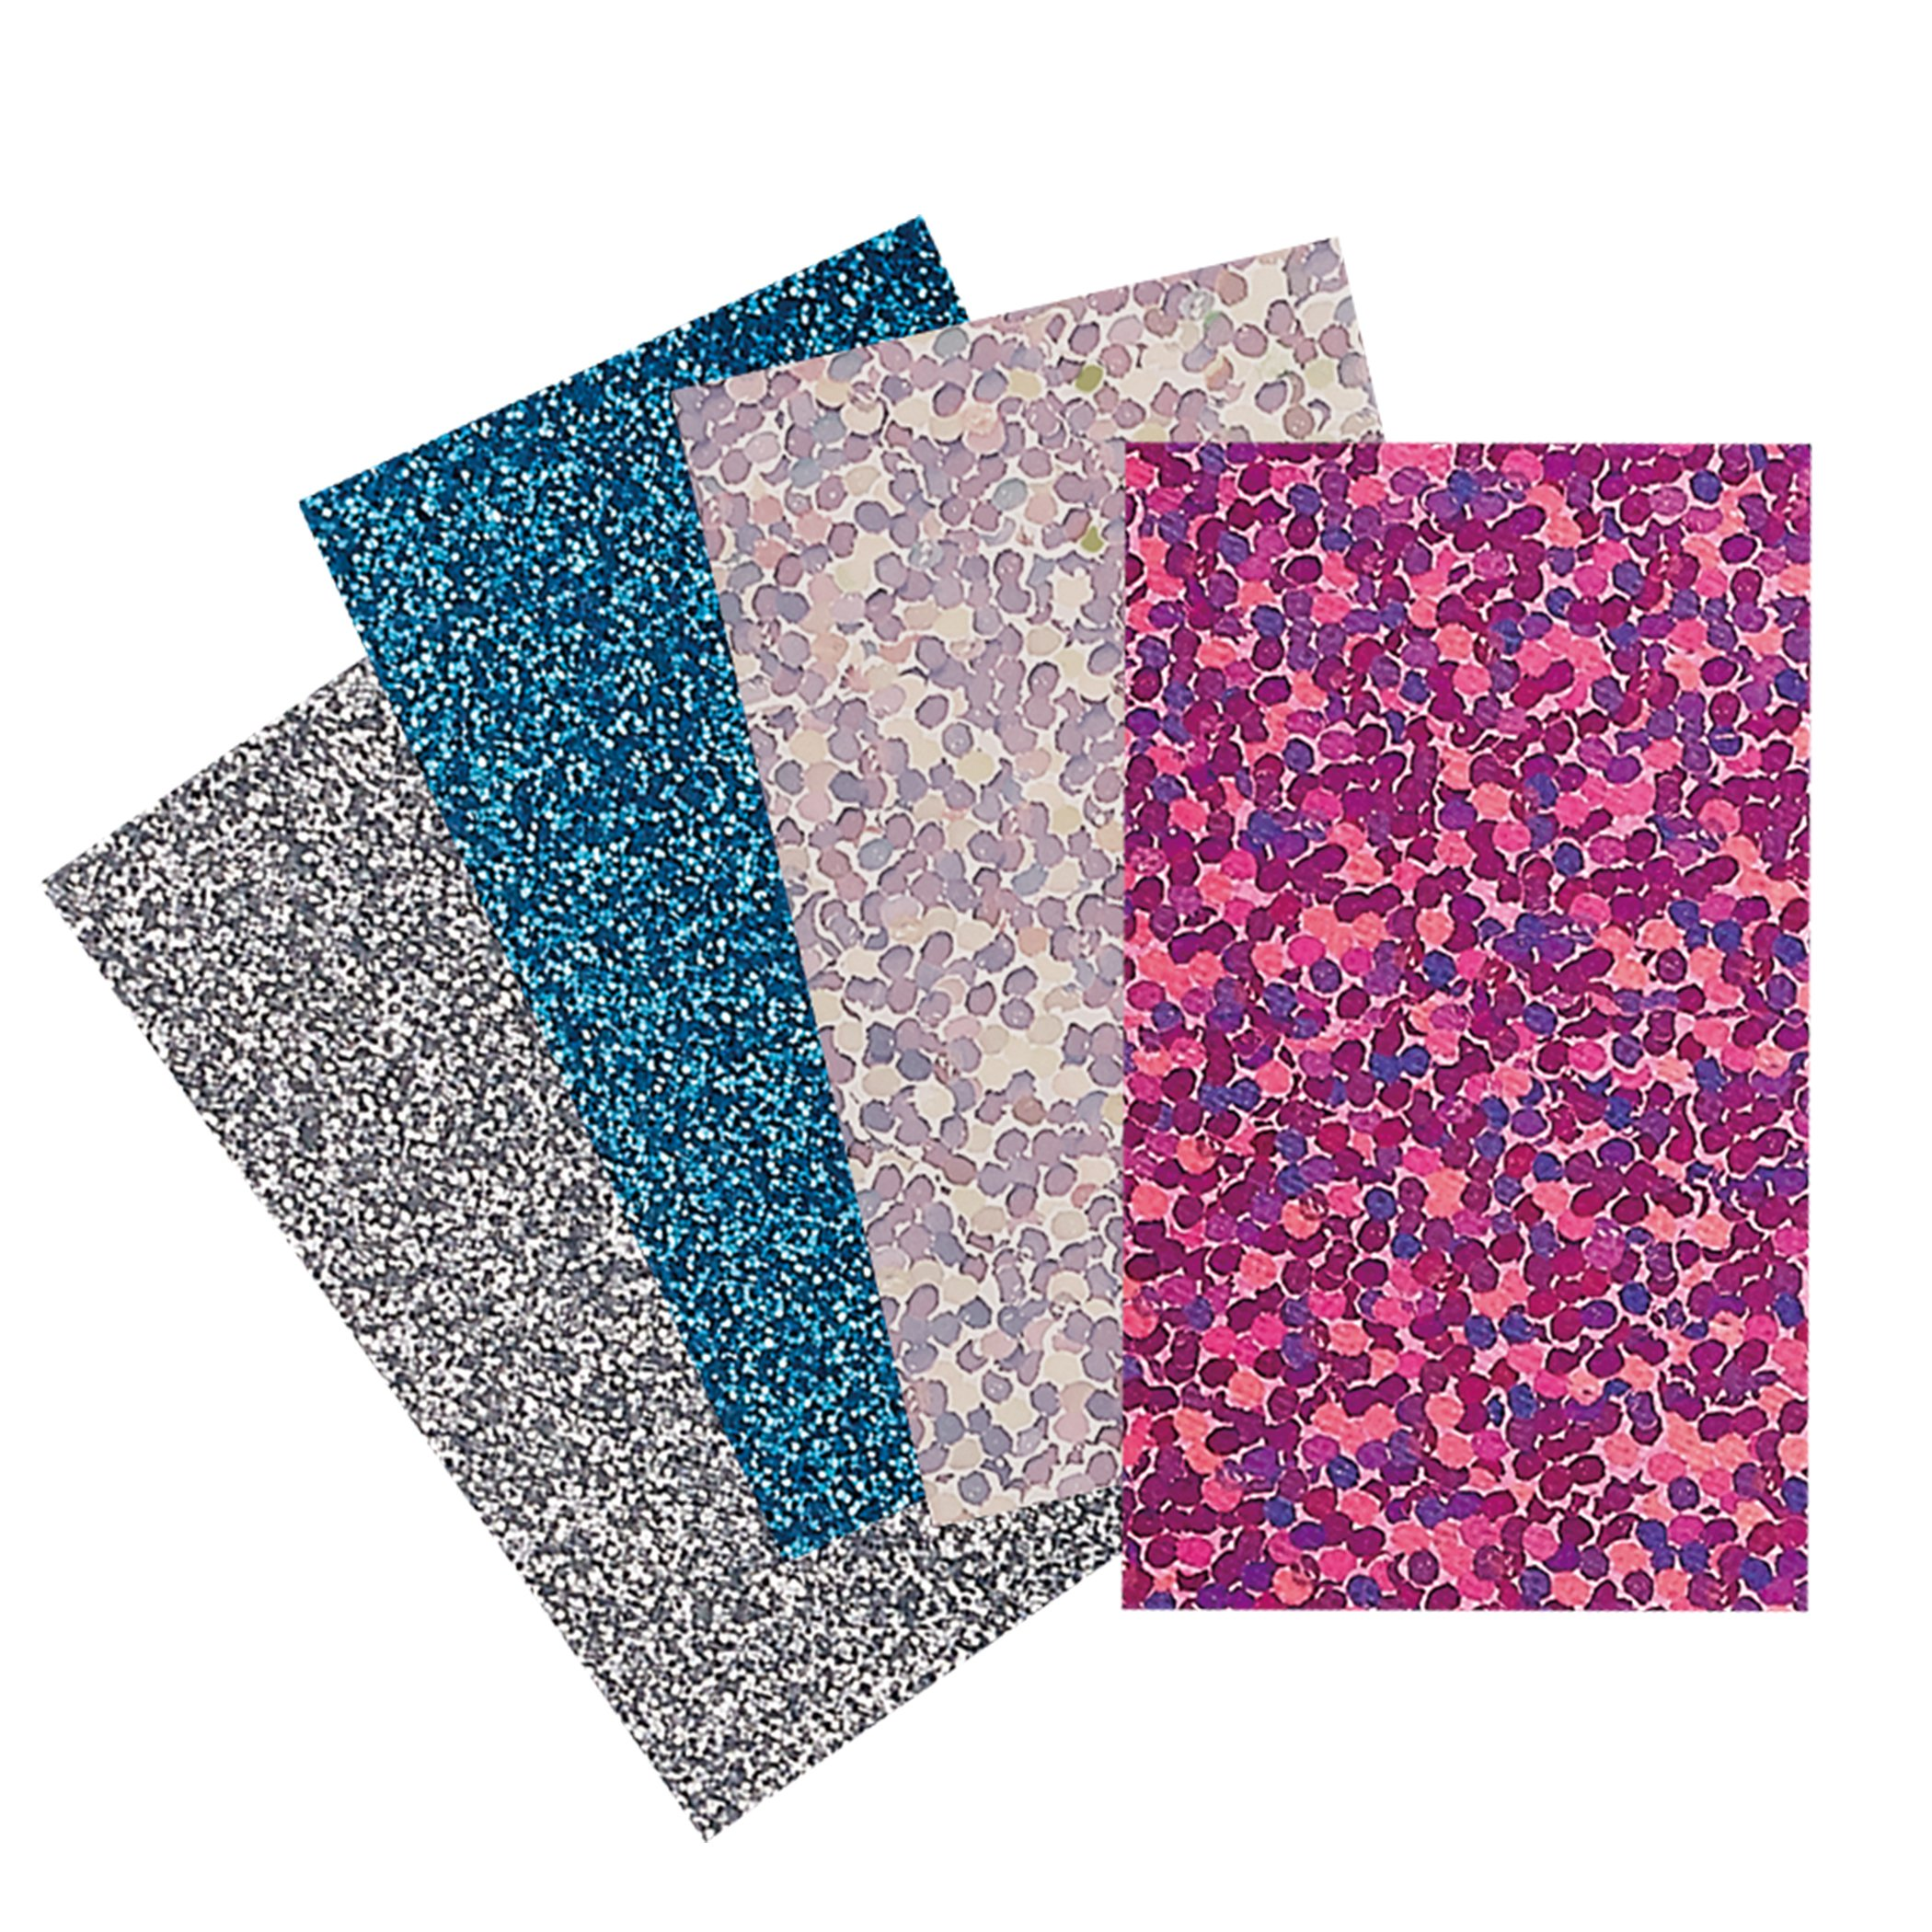 Brother Iron-on Transfer Sample Pack - Glitter & Holographic - Silver, Blue, Pink (catsp01)